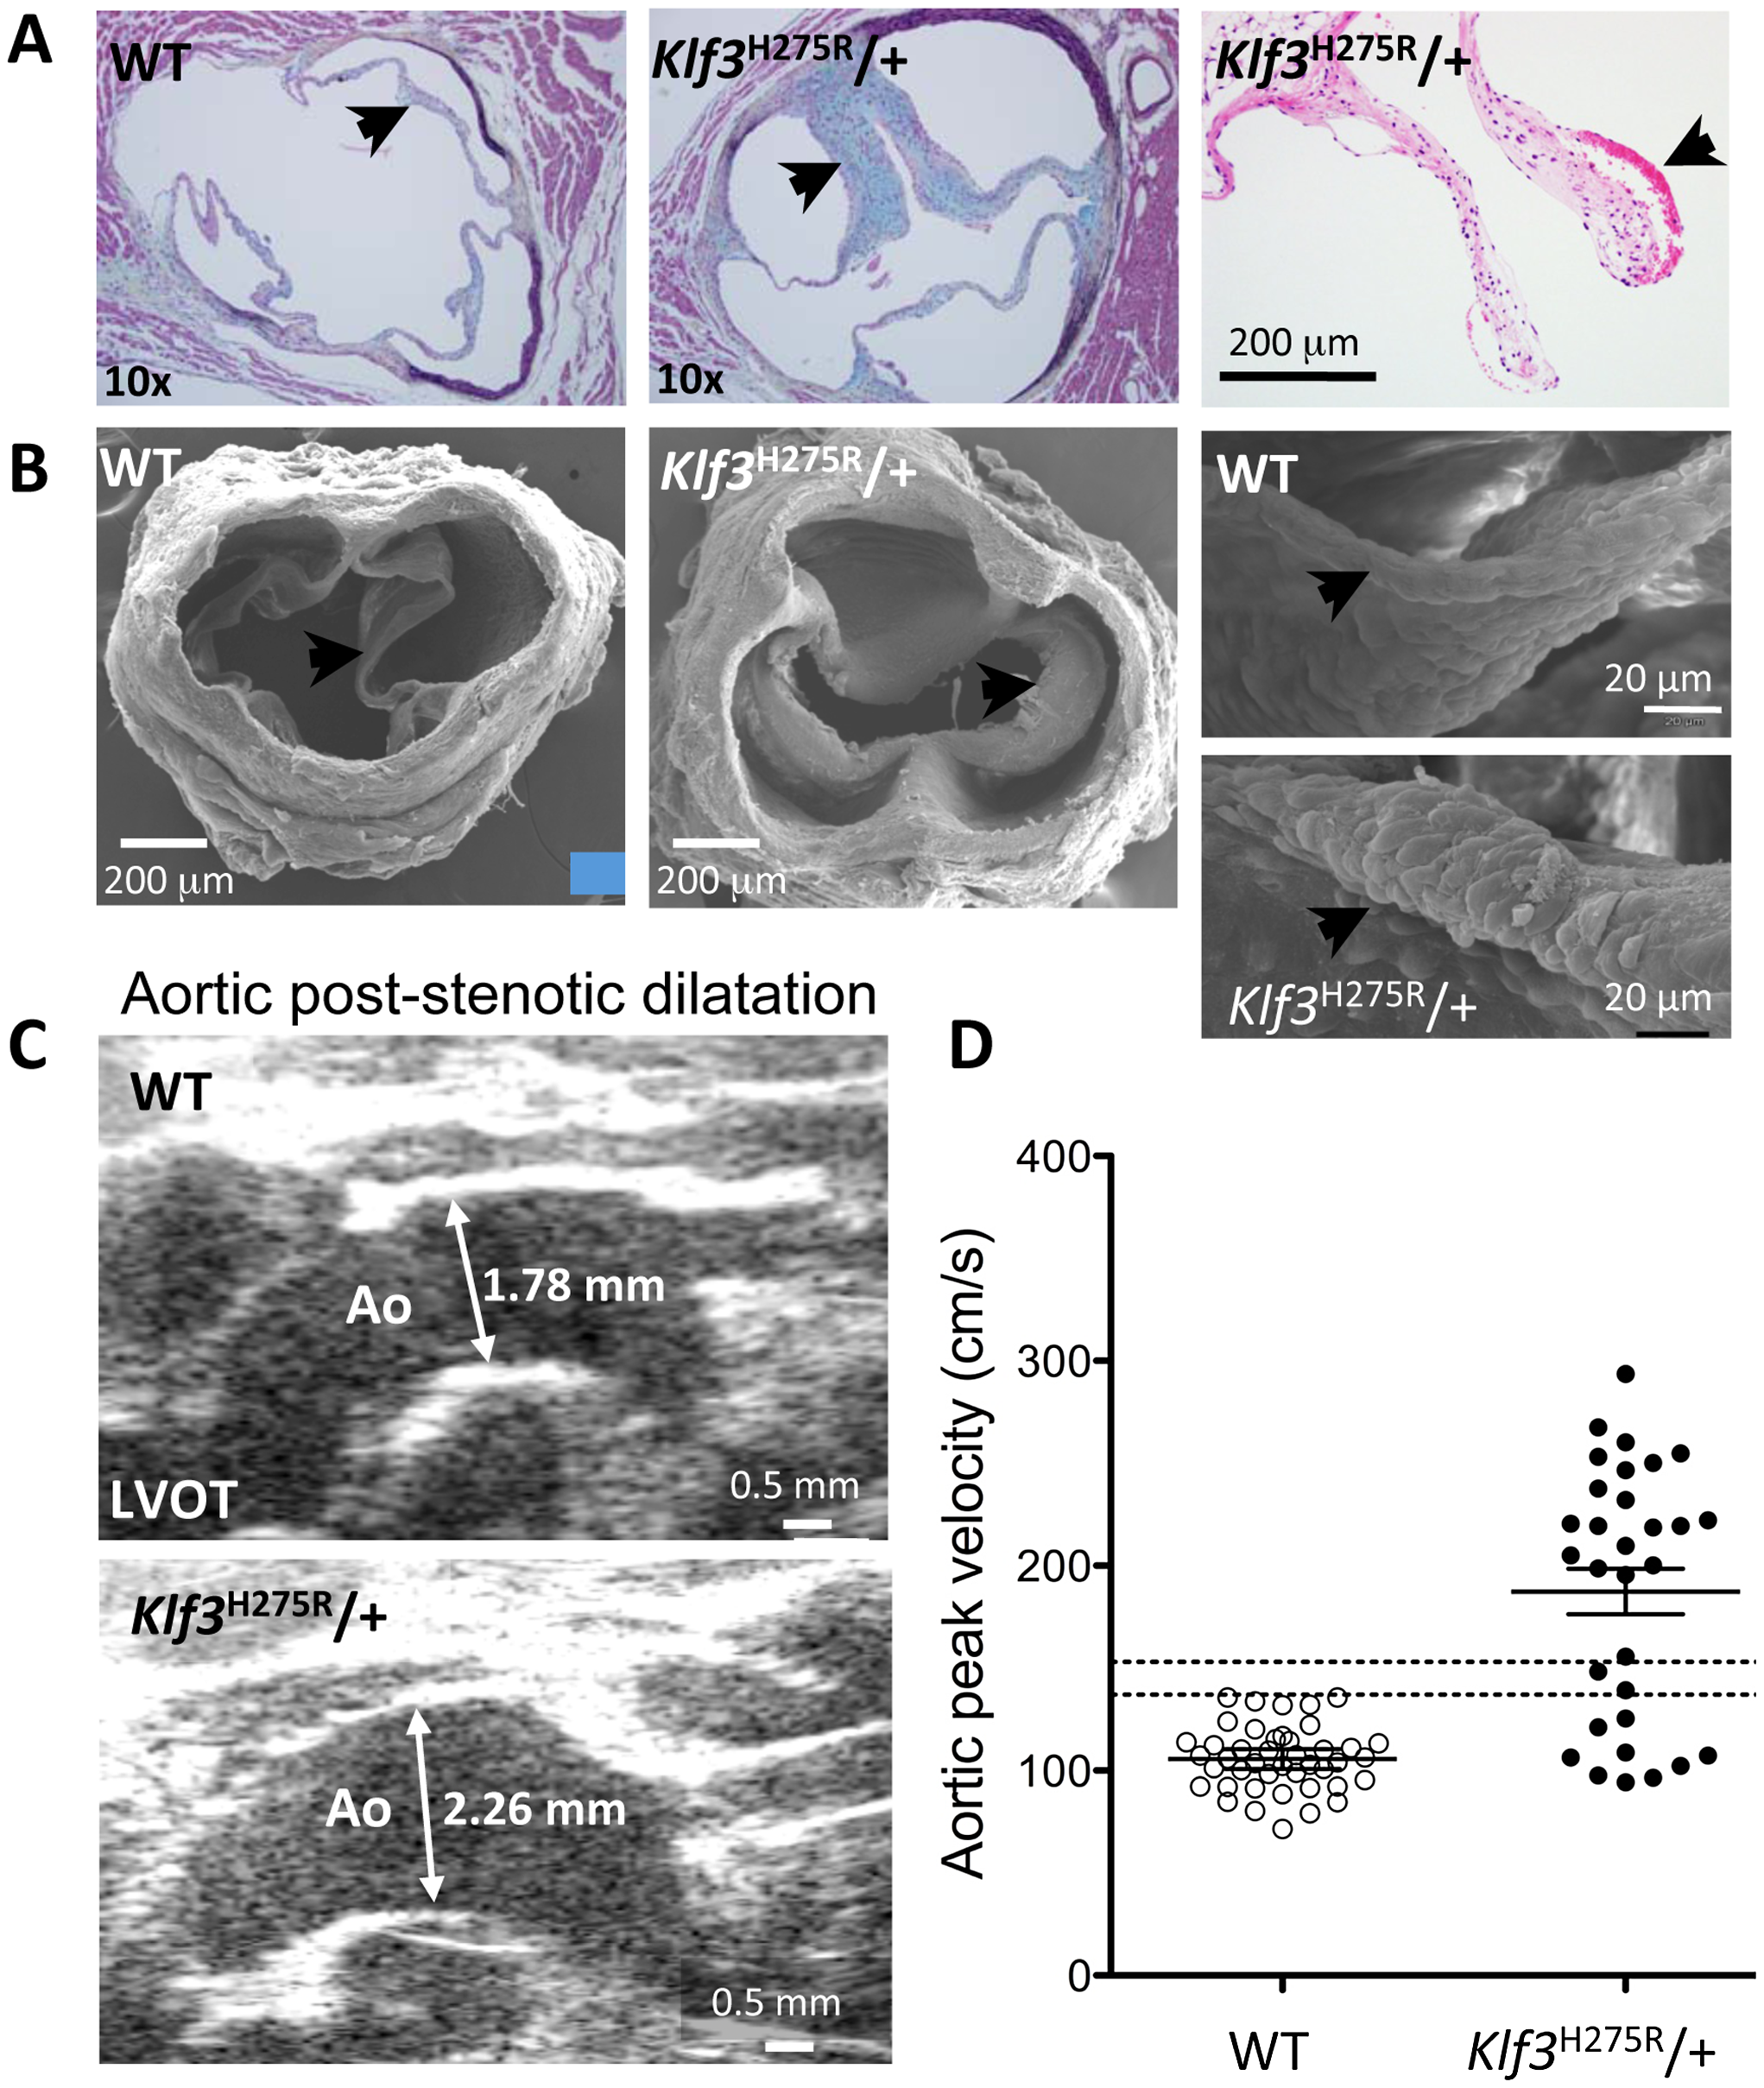 Morphological evidence for aortic valvular stenosis in <i>Klf3</i><sup>H275R</sup>/+ mice.